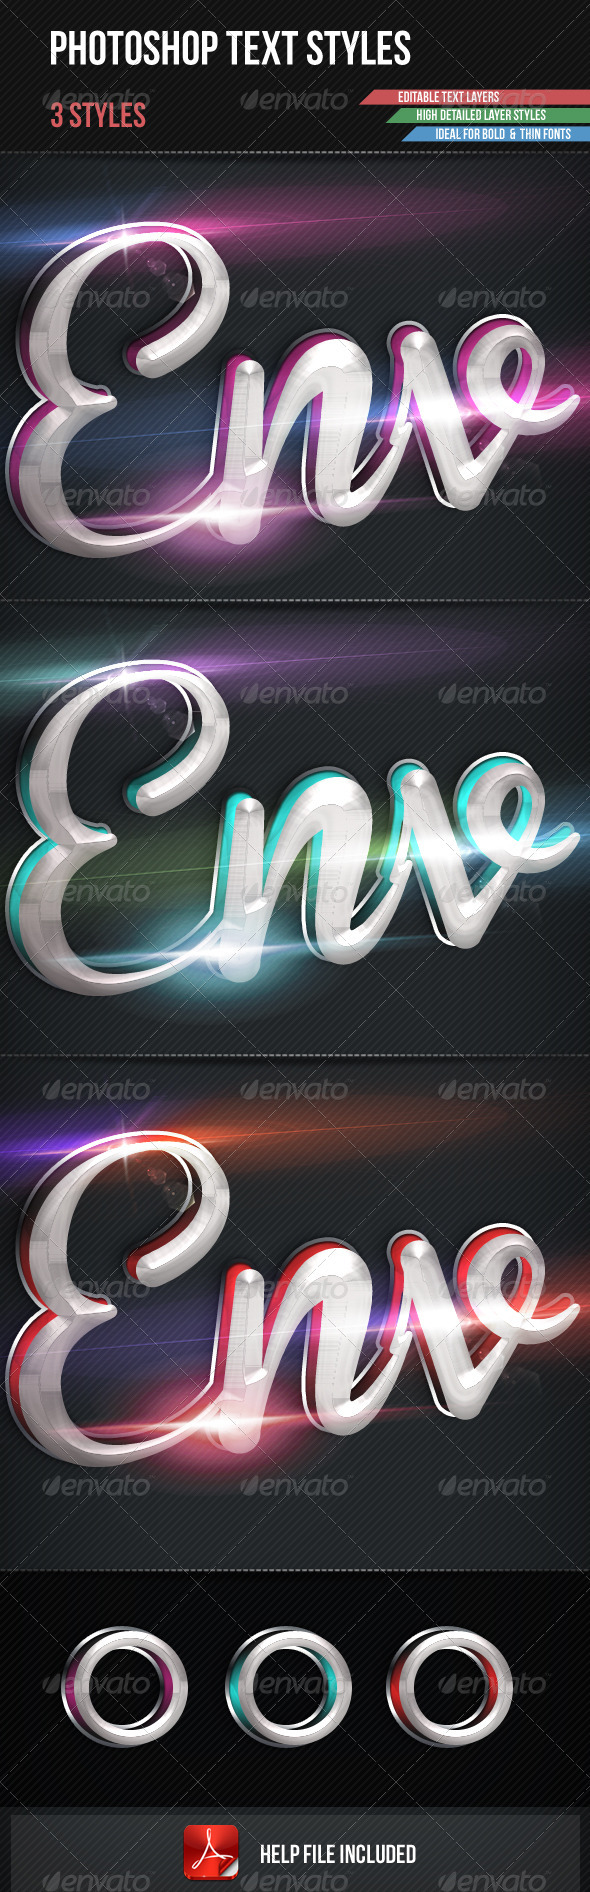 GraphicRiver Photoshop Text Styles 2812052